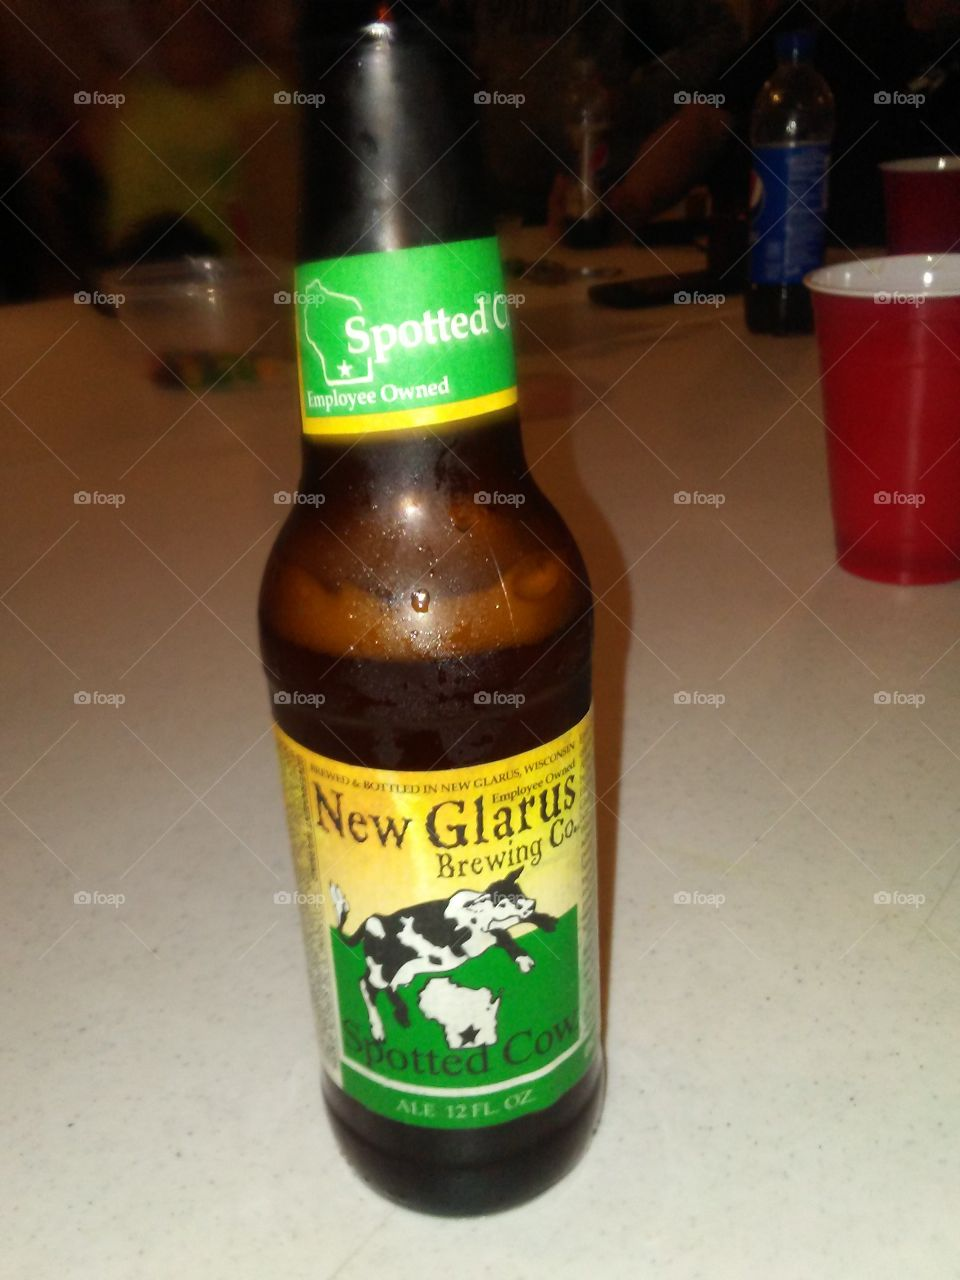 Drinking a Spotted Cow, a Farmhouse Ale made by the New Glarus Brewing Company Southwest of Madison, Wisconsin.  Their beers and ales are only distributed and sold in Wisconsin.